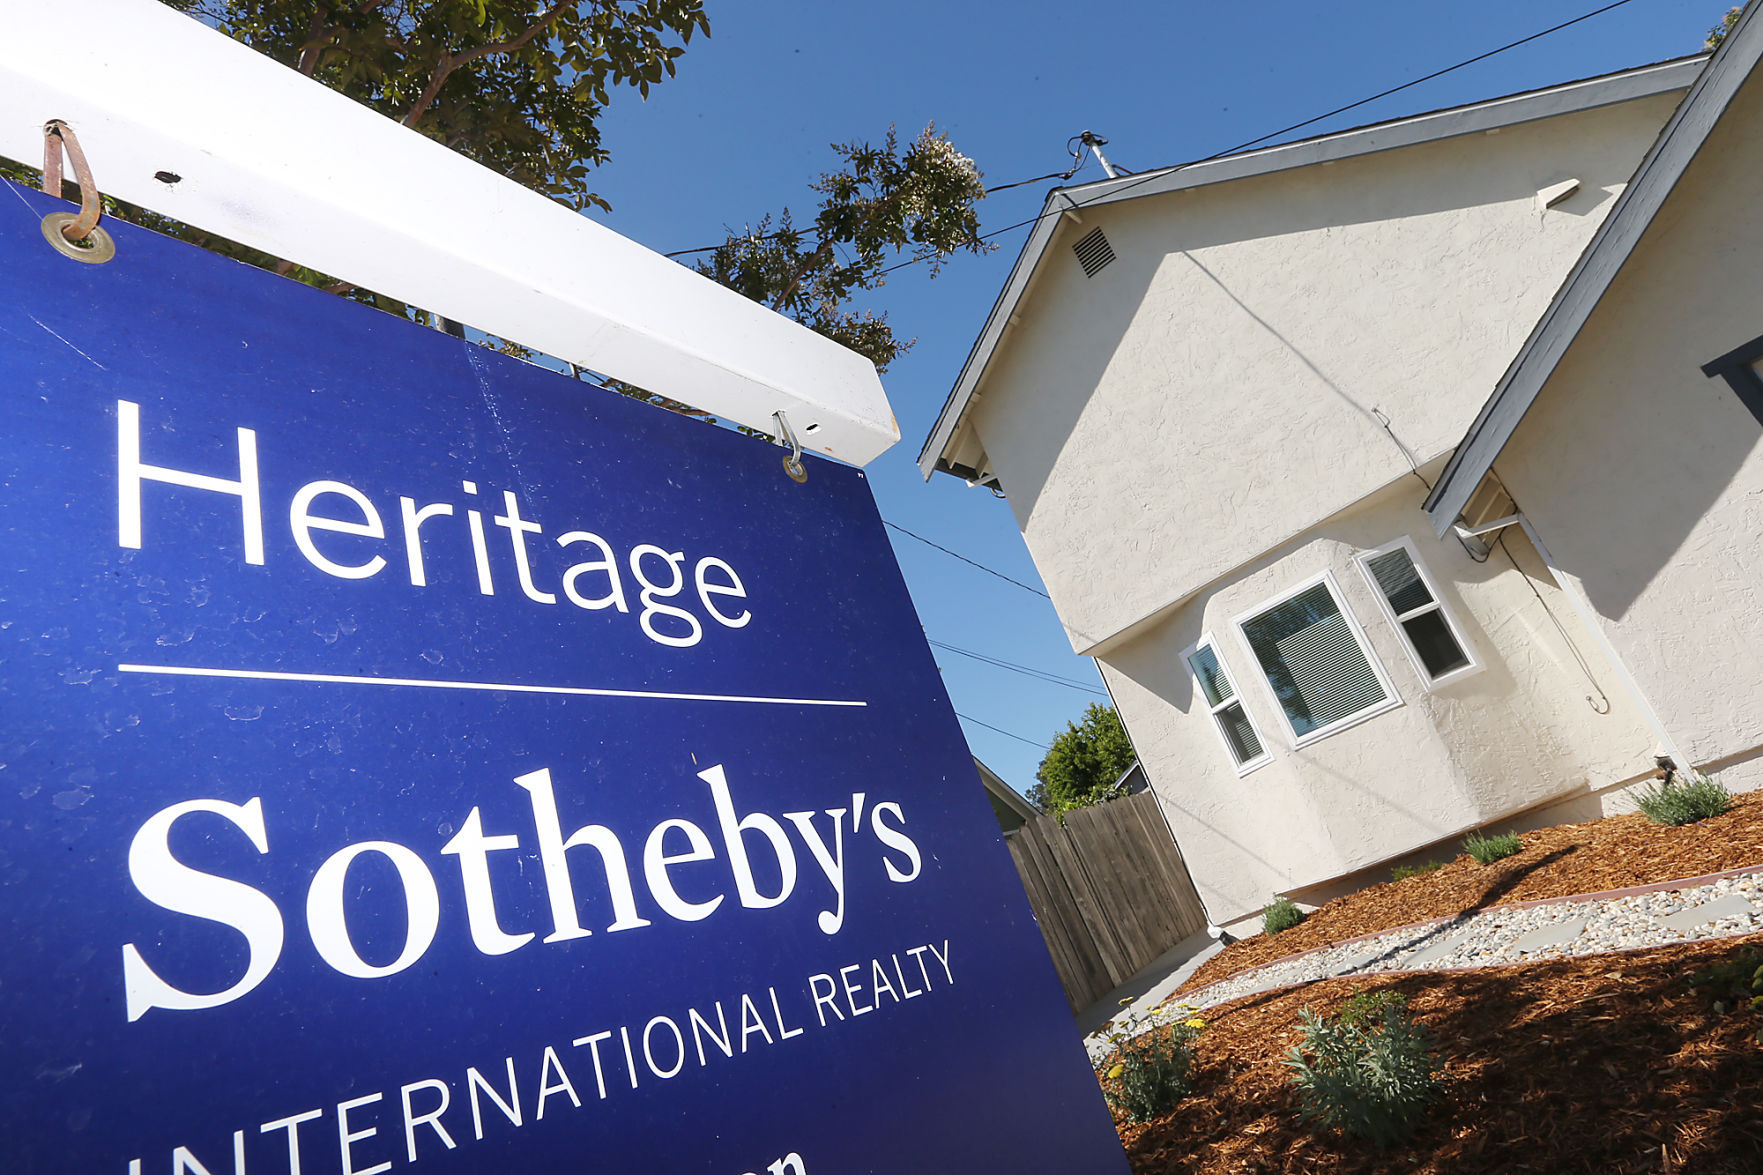 Fewer Homes For Sale Under $500,000 In Napa County